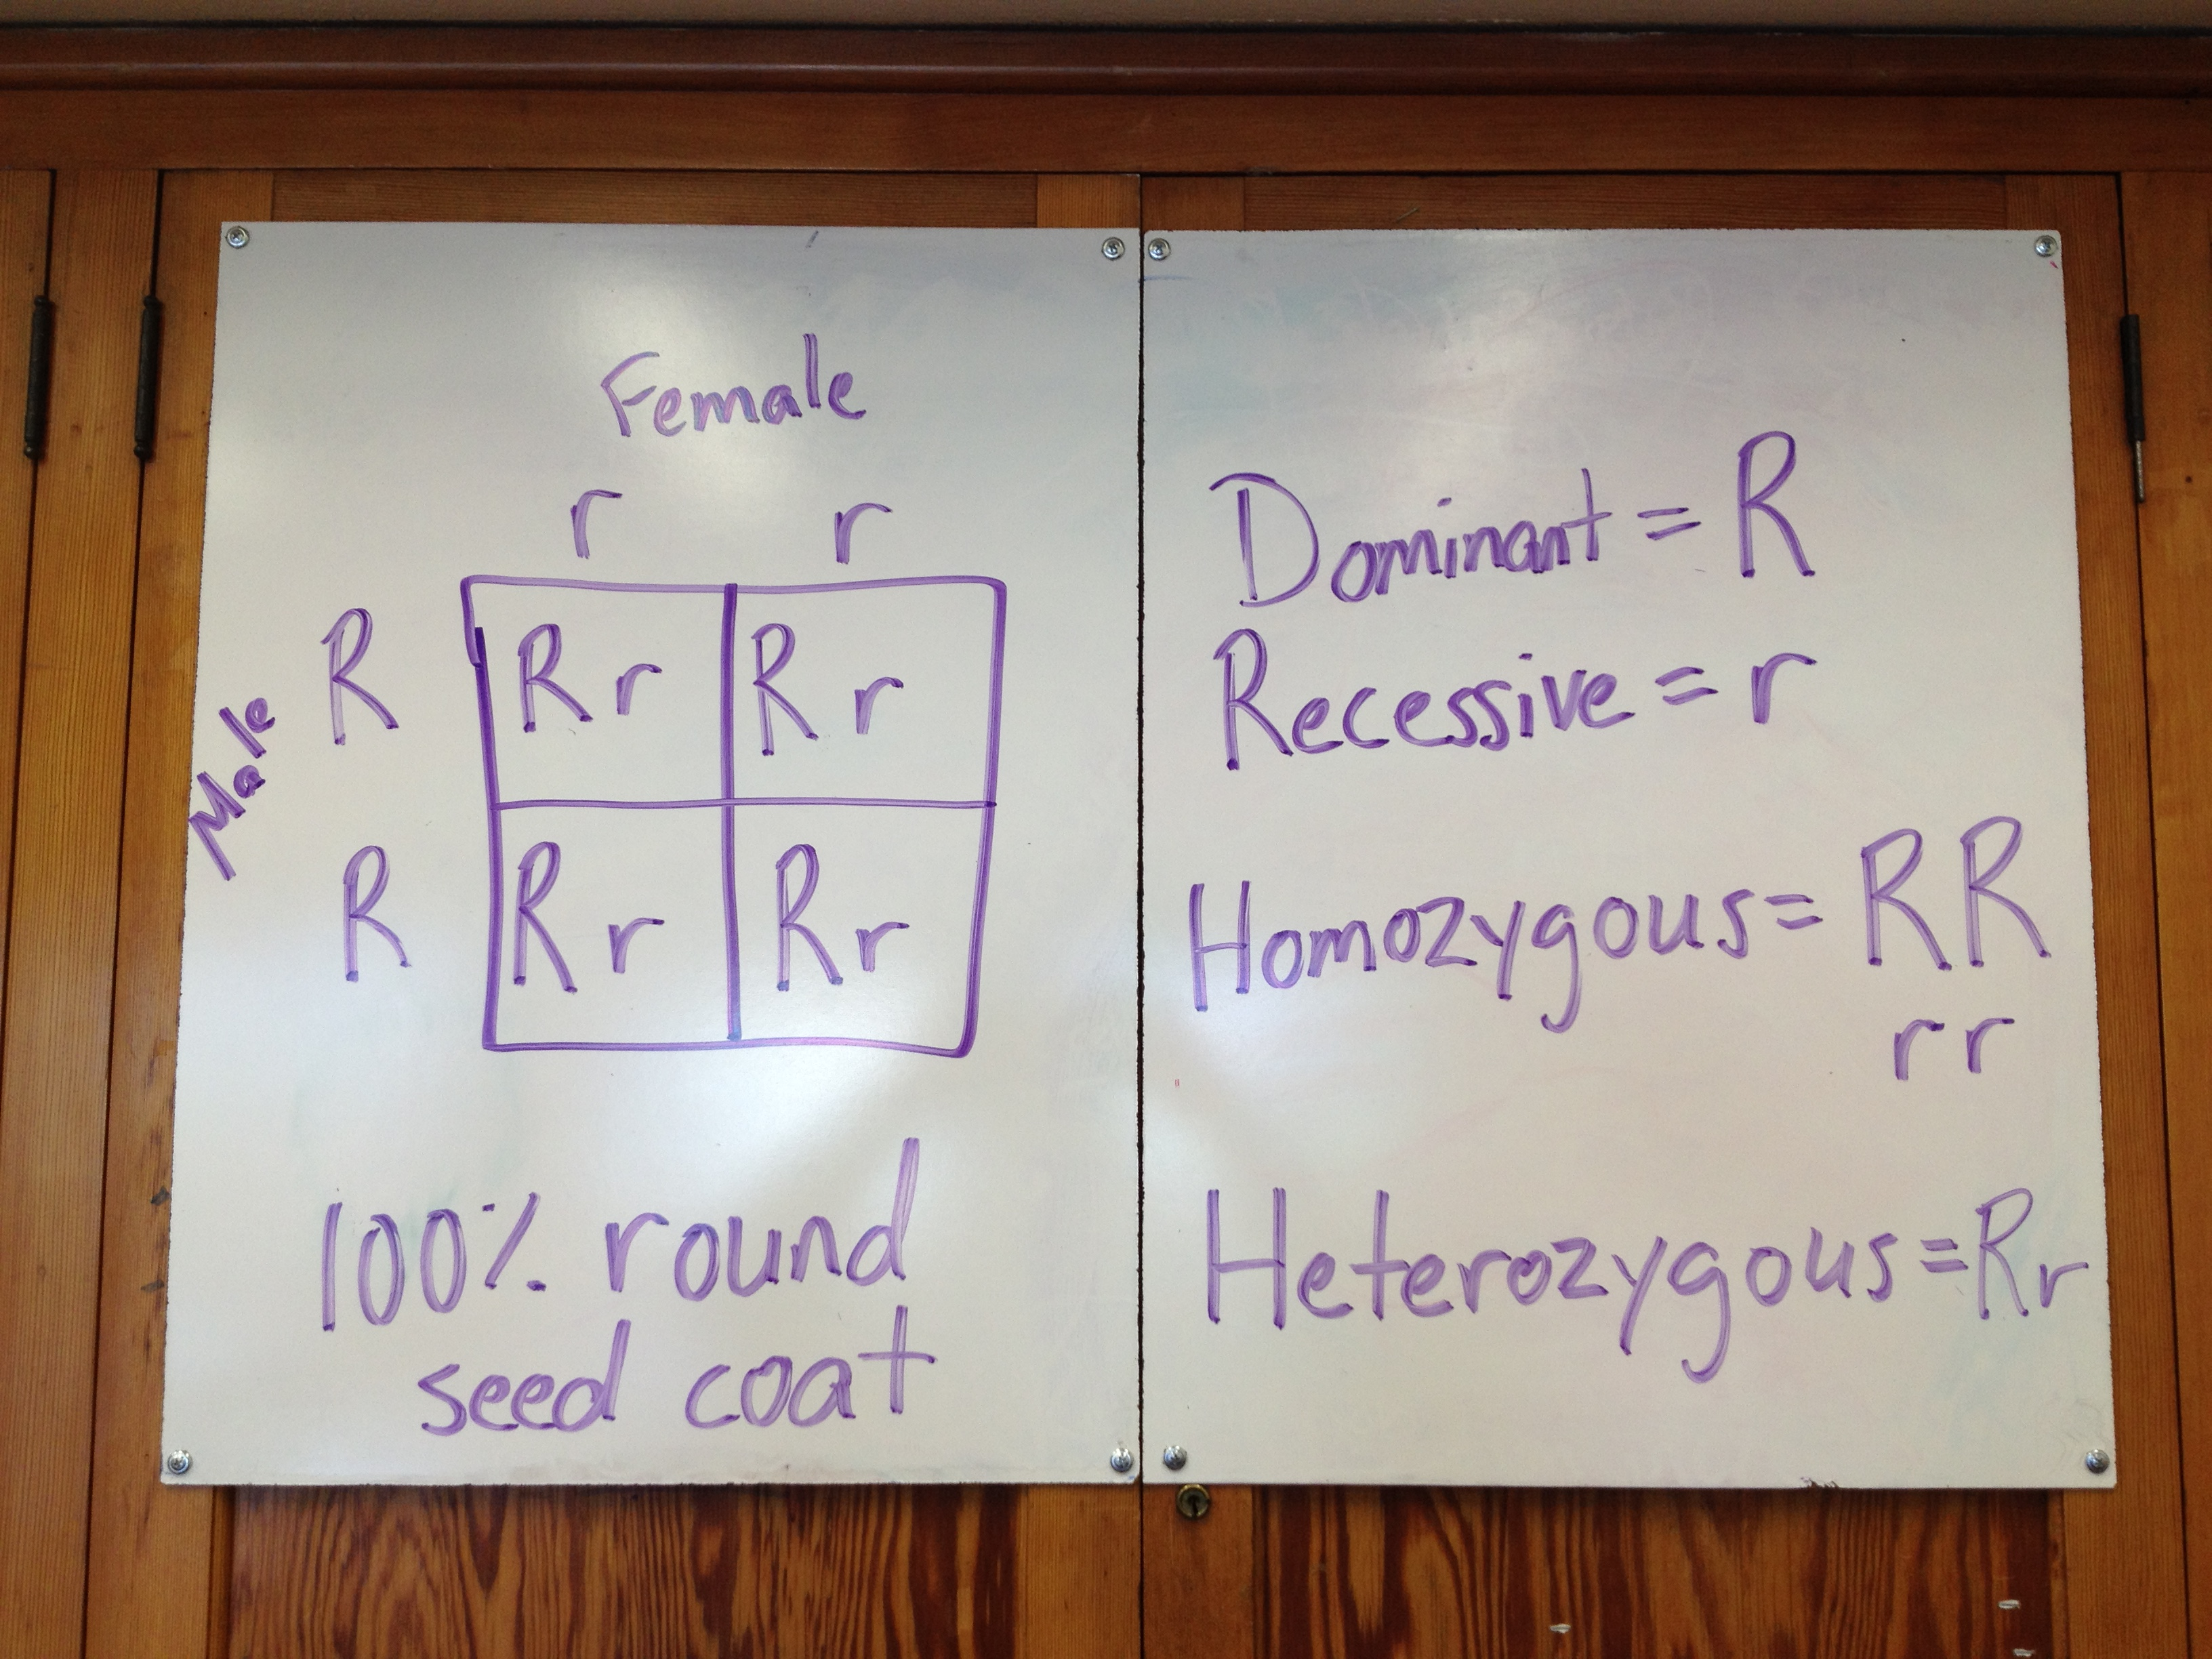 Reproduction Inheritance And Meiosis Punnett Squares